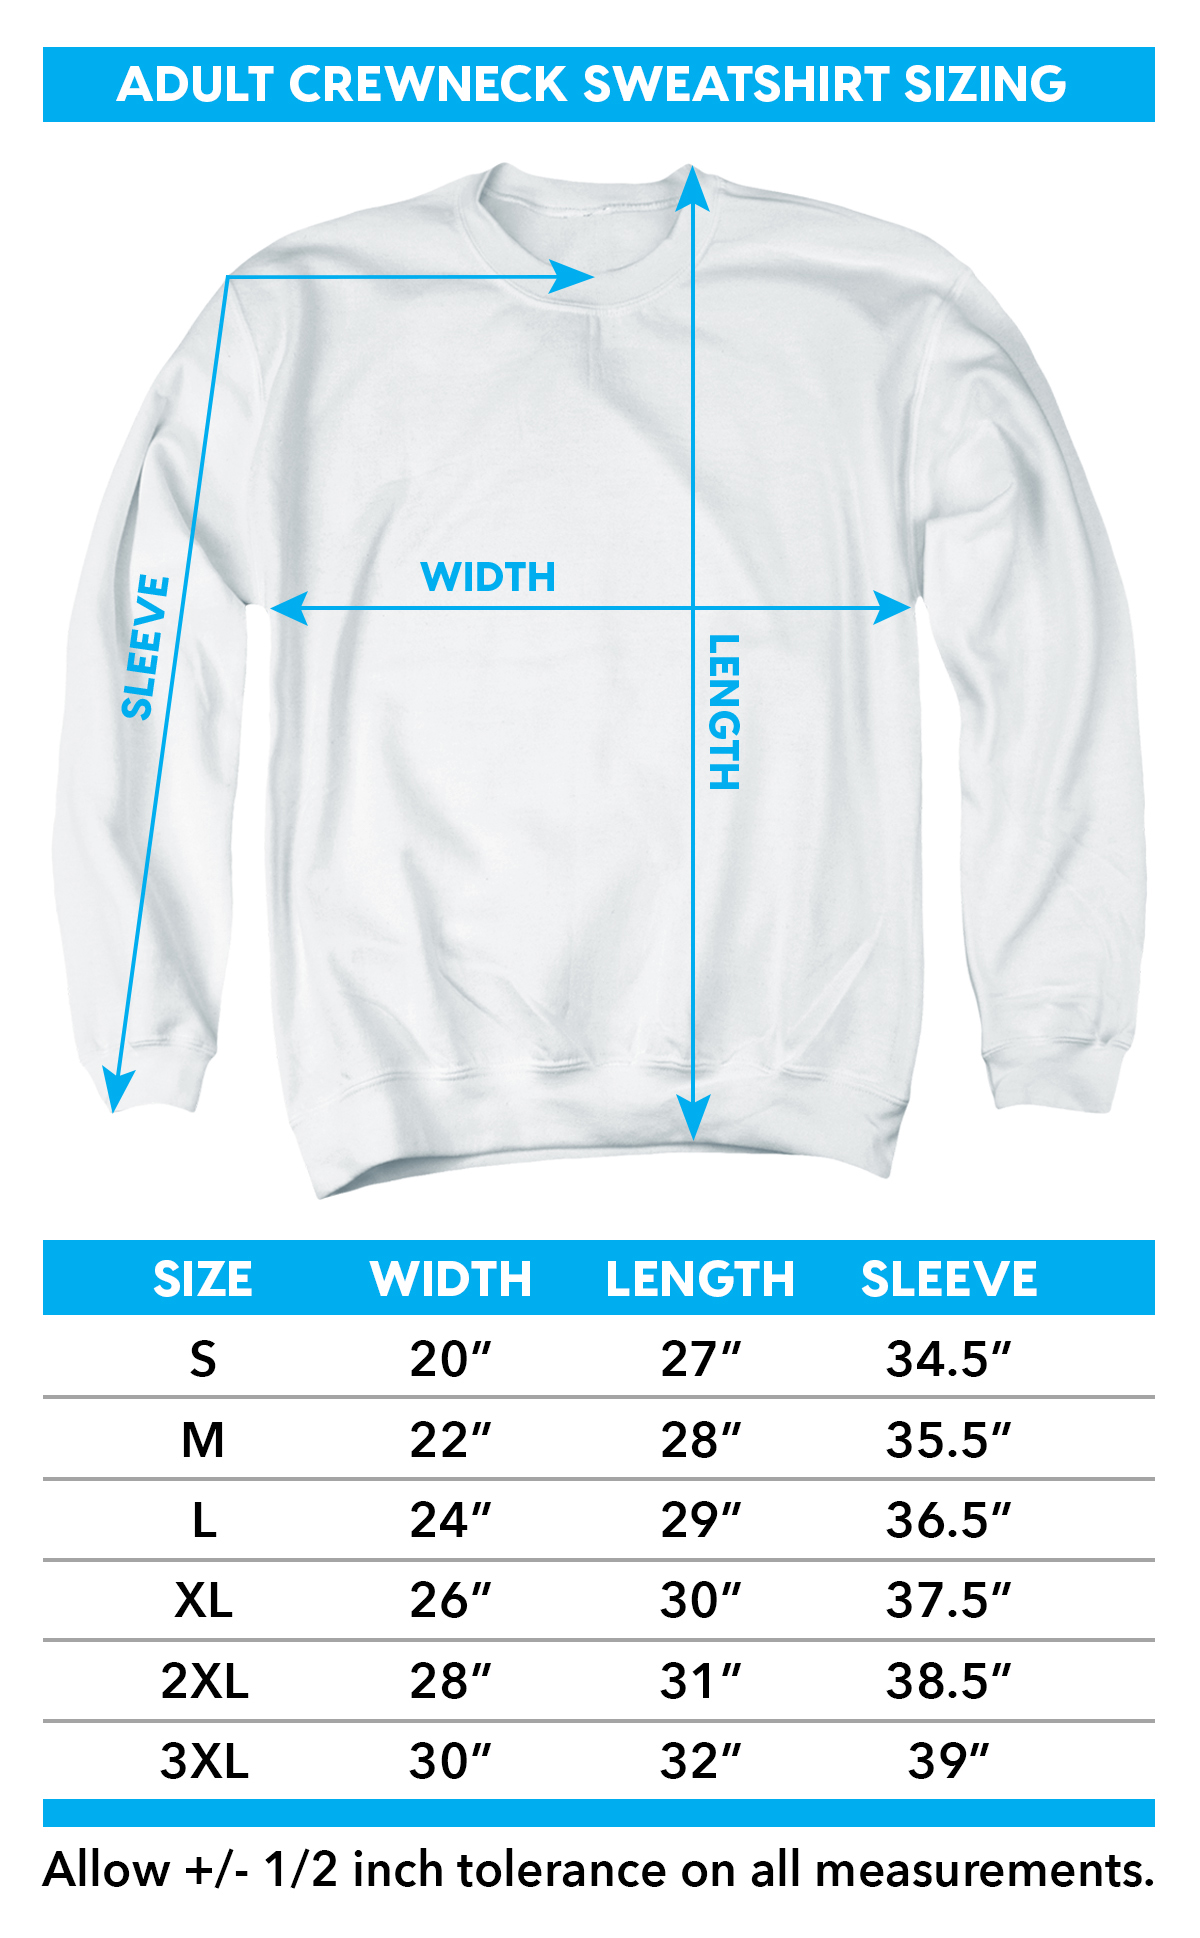 Sizing chart for the The Shining The Bear crewneck sweatshirt